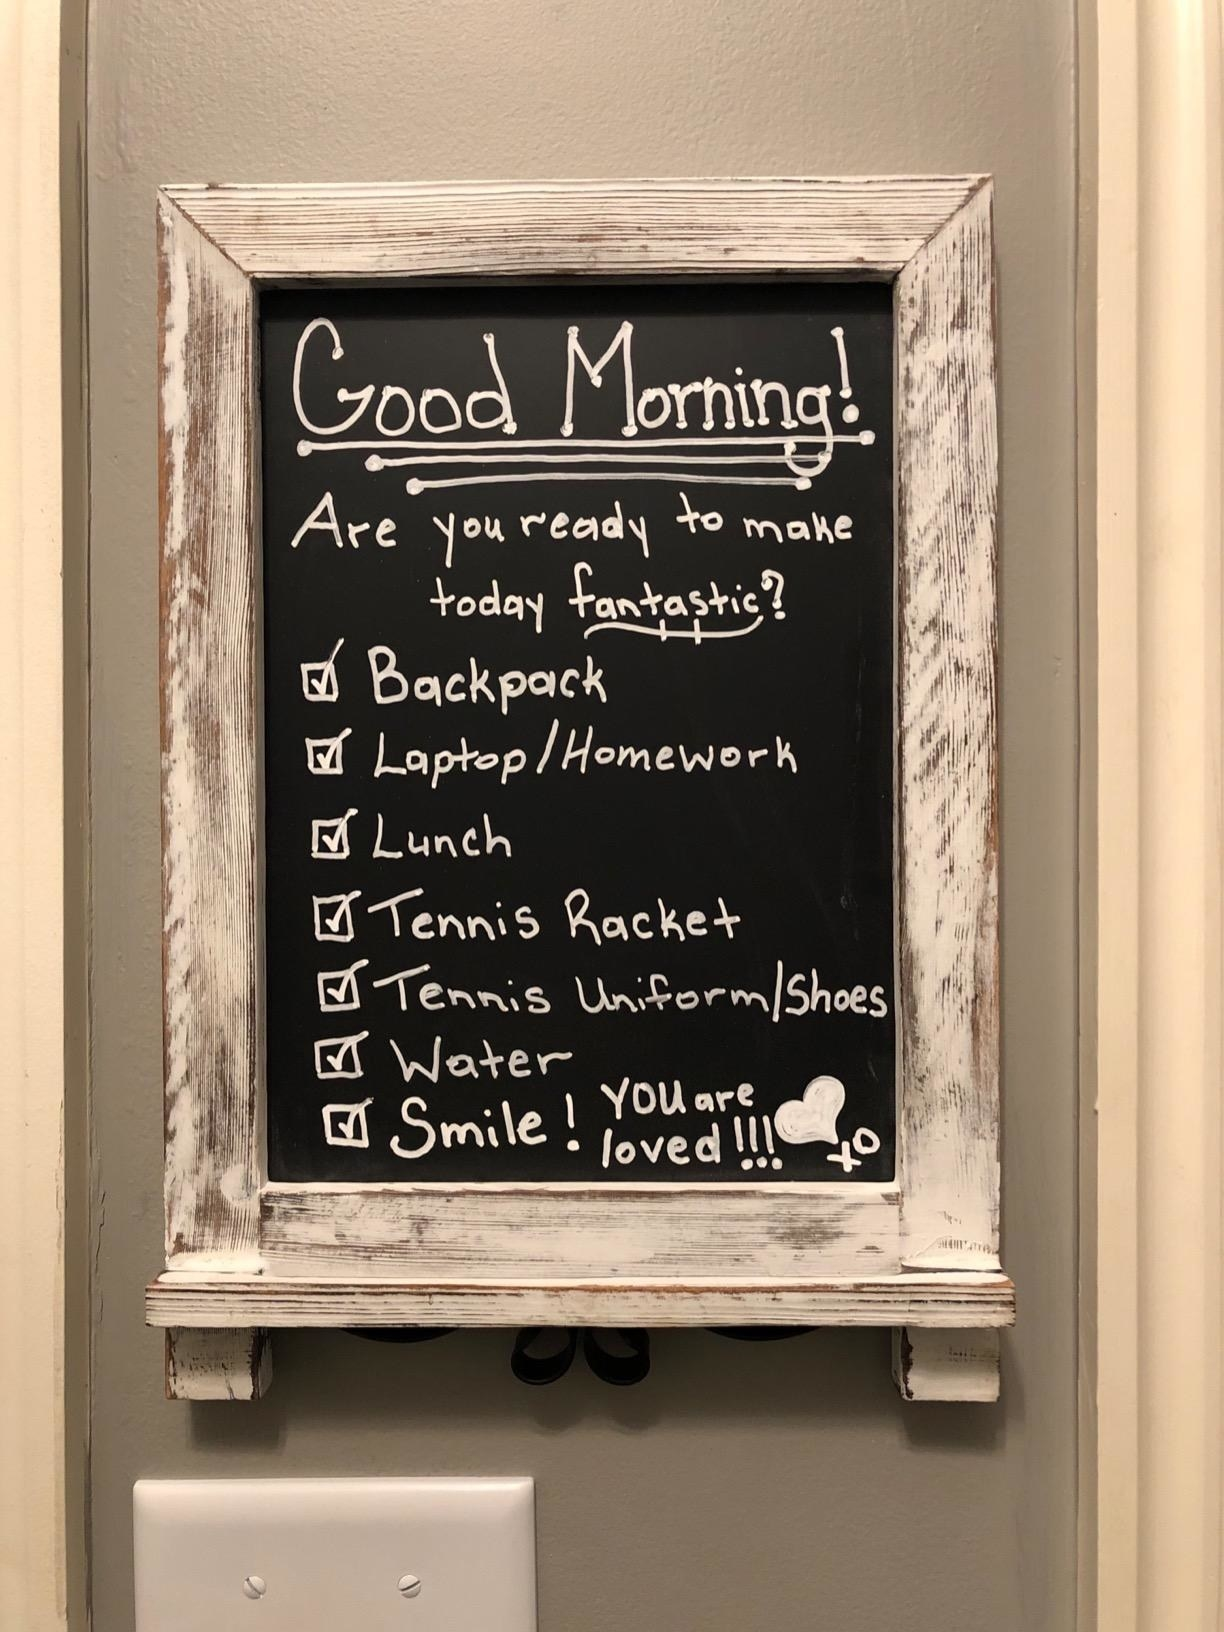 reviewer image of the rustic whitewash chalkboard mounted on a wall with a checklist on it